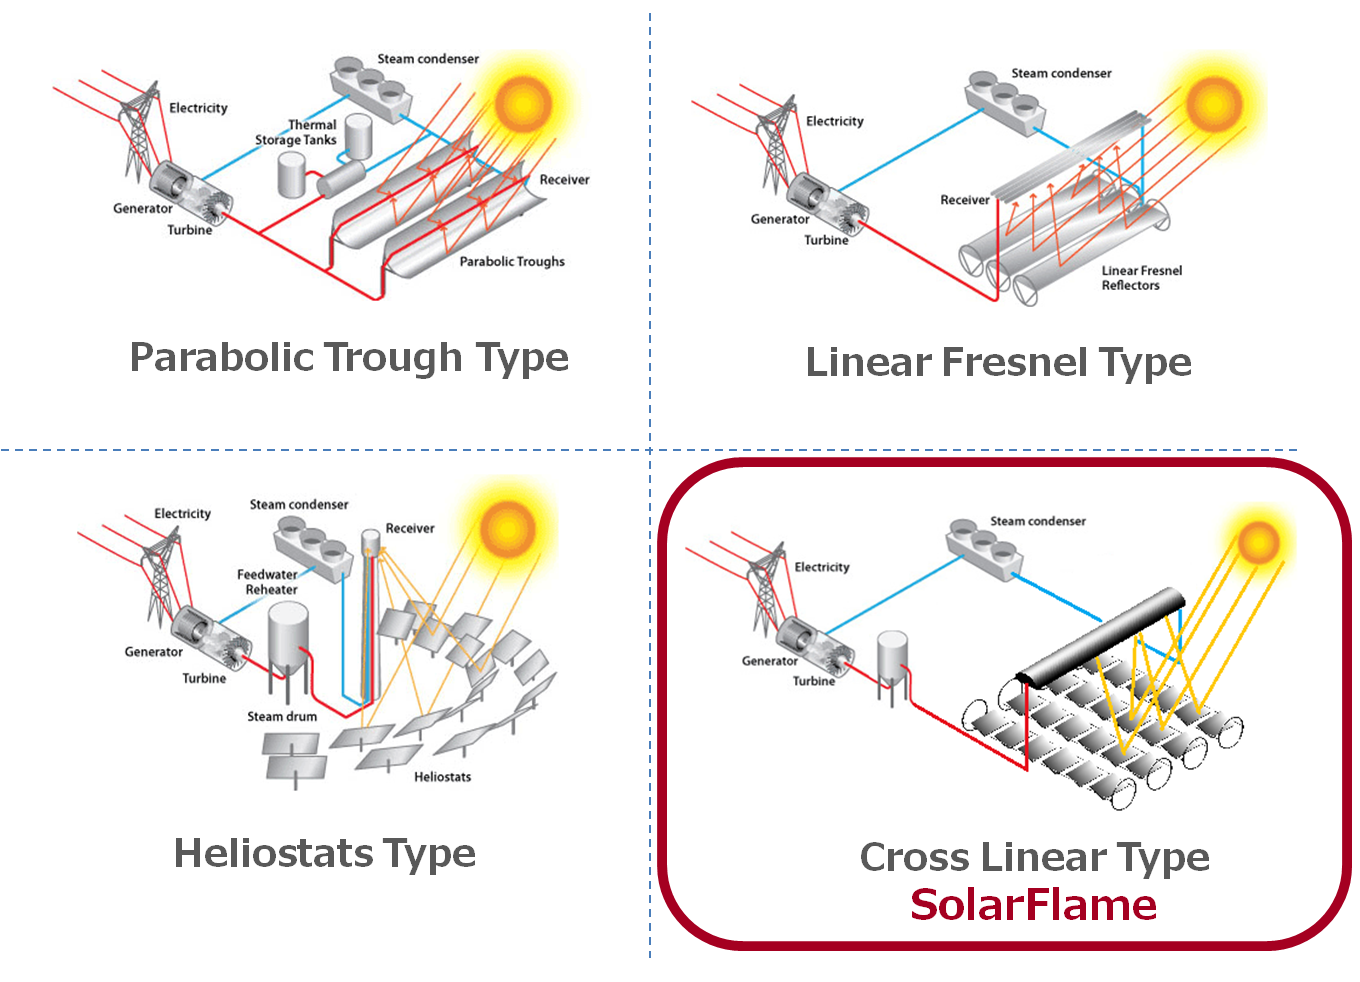 small resolution of solar thermal power generation concentrated solar thermal power generation technology uses mirrors to collect solar